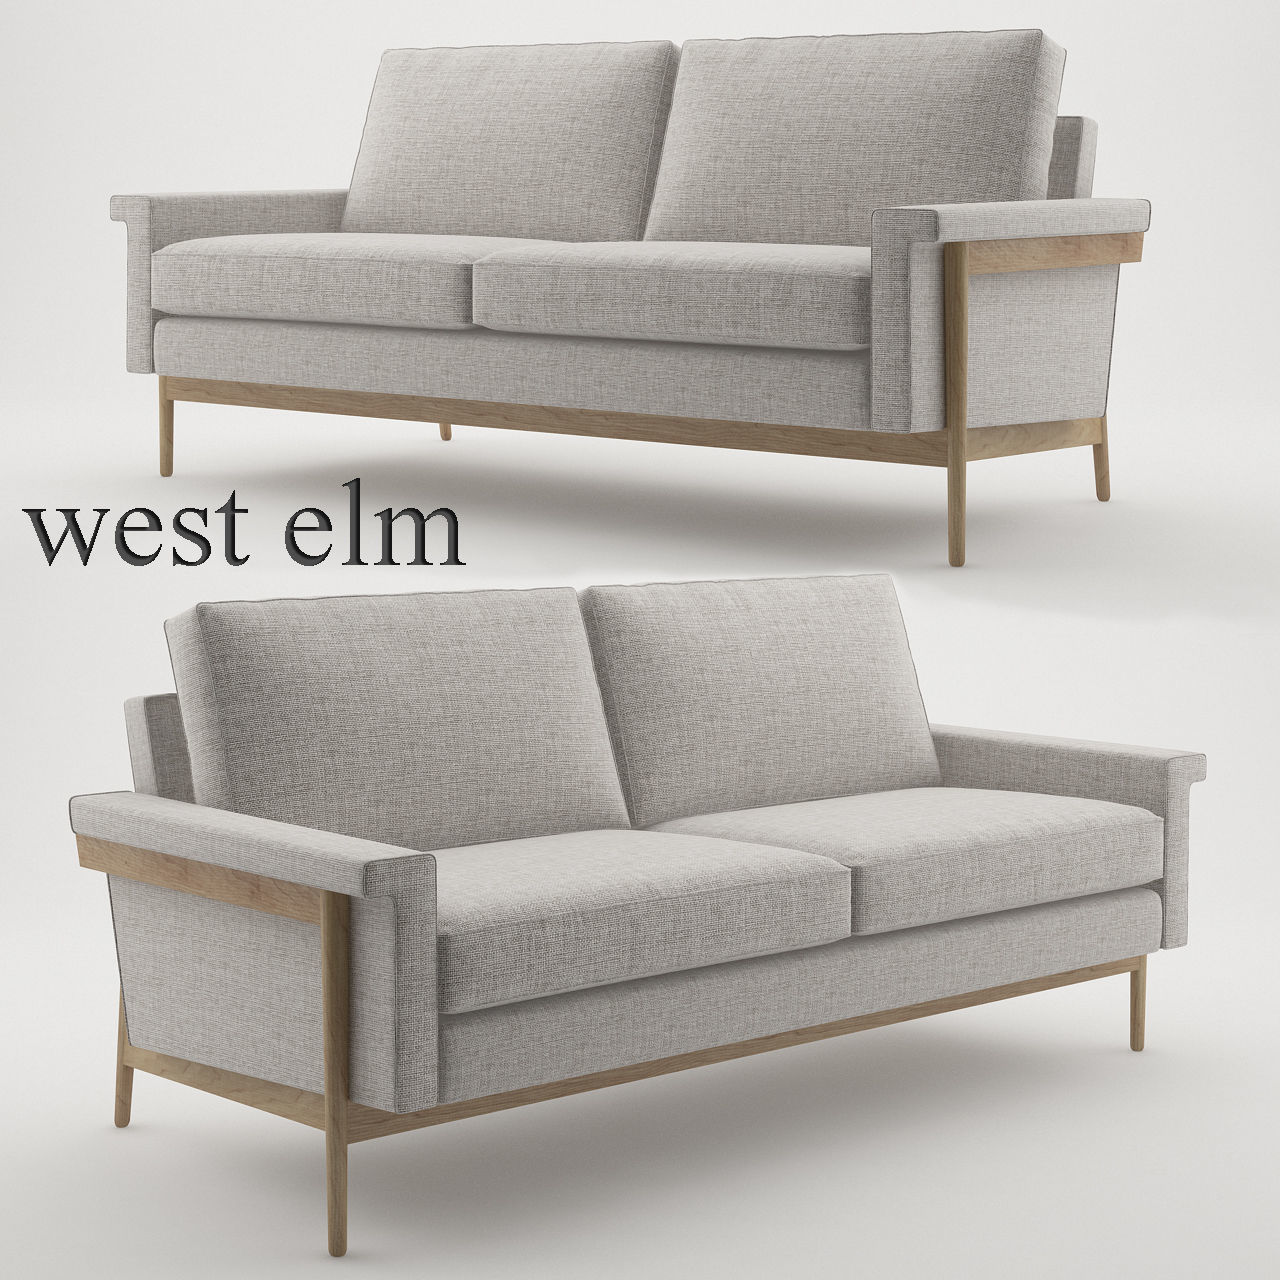 Peachy Leon Wood Frame Loveseat 68 By West Elm 3D Model Caraccident5 Cool Chair Designs And Ideas Caraccident5Info